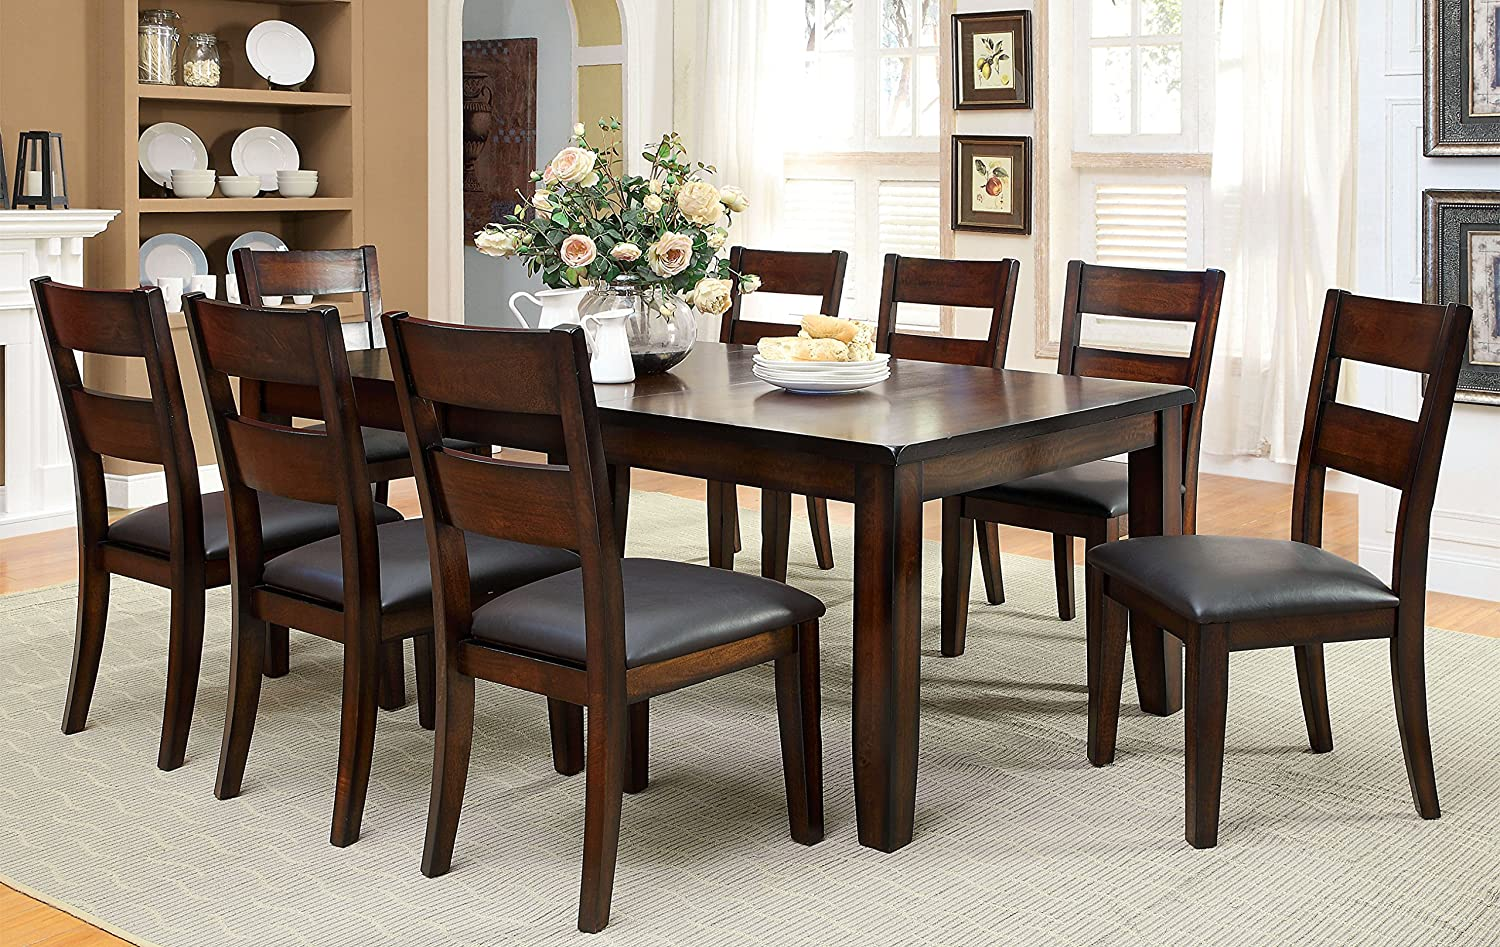 amazoncom furniture of america dallas 9 piece transitional dining set dark cherry table chair sets - Dining Room Furniture Dallas